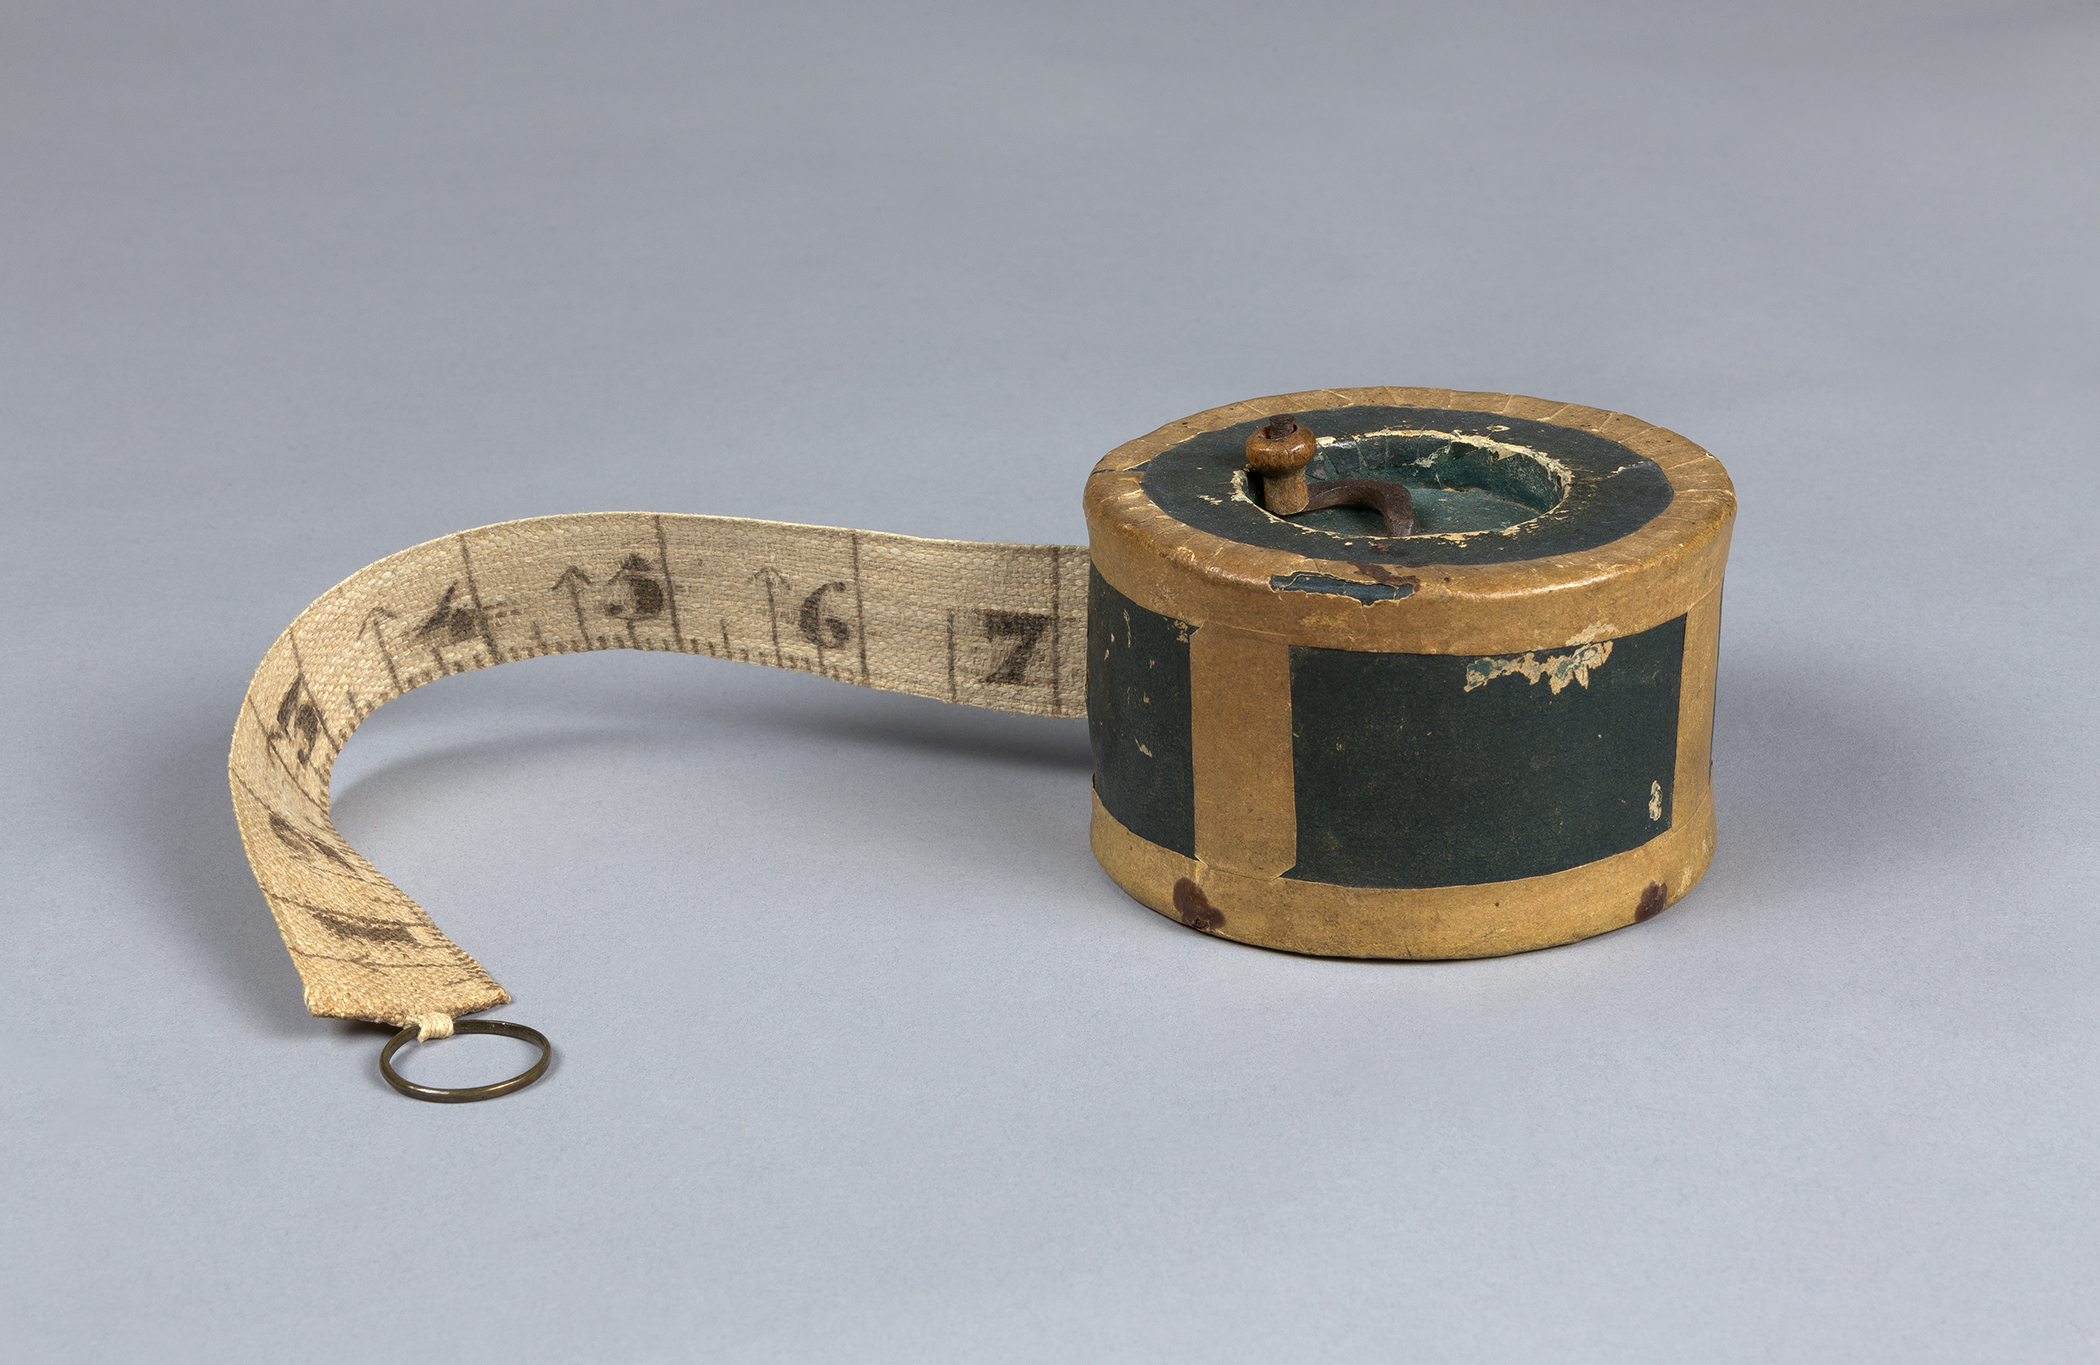 Works on Paper - Box with measuring tape